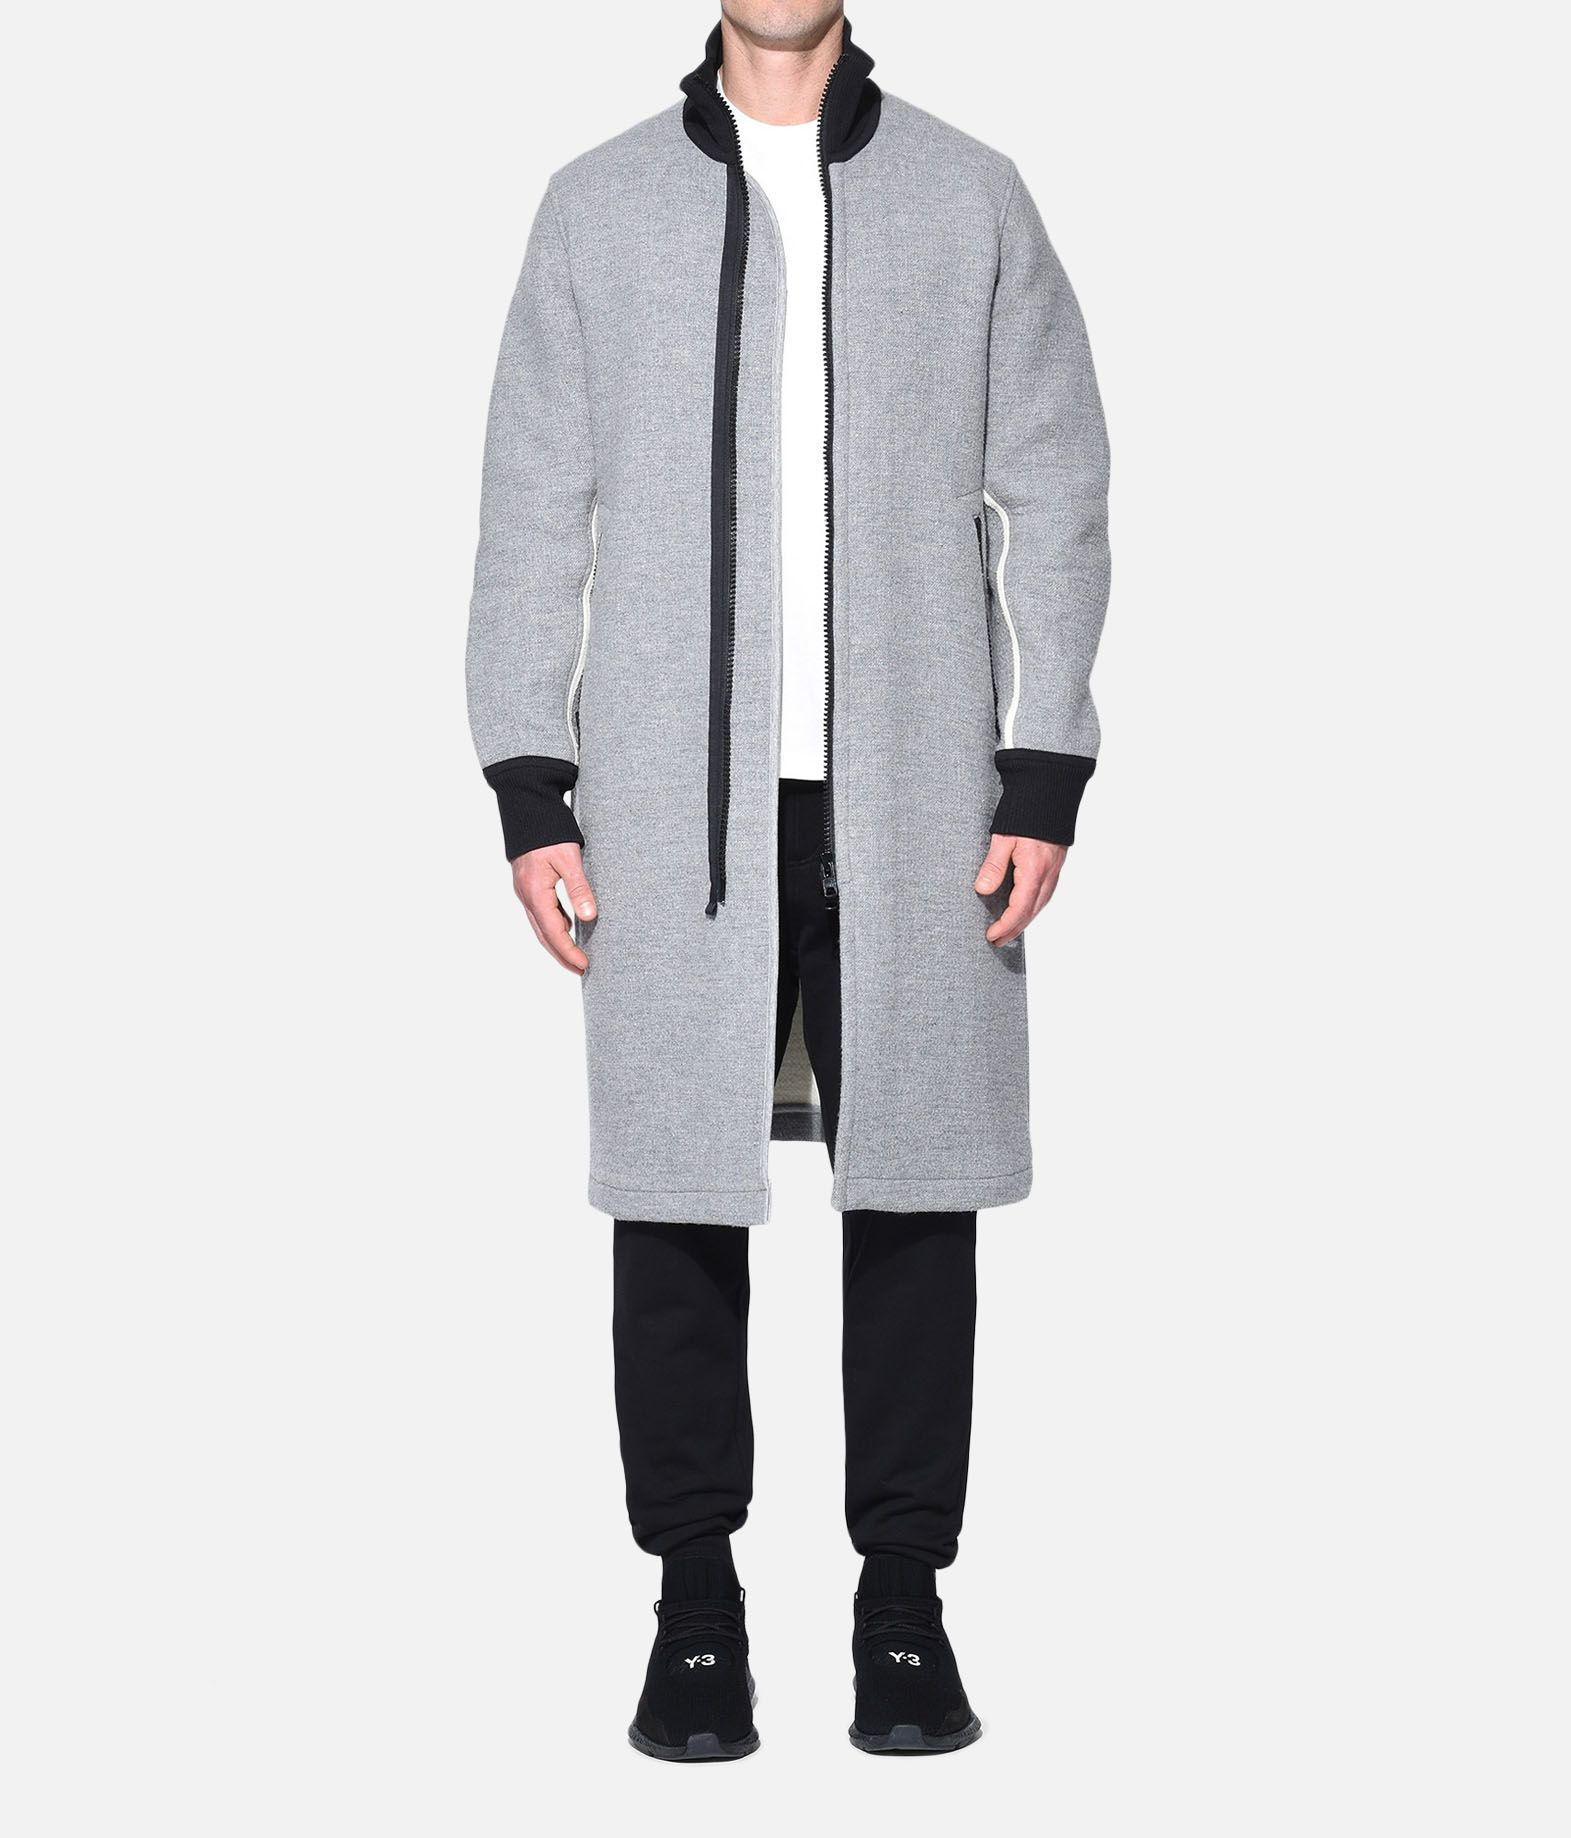 Y-3 Y-3 Spacer Wool Coat Coat Man r